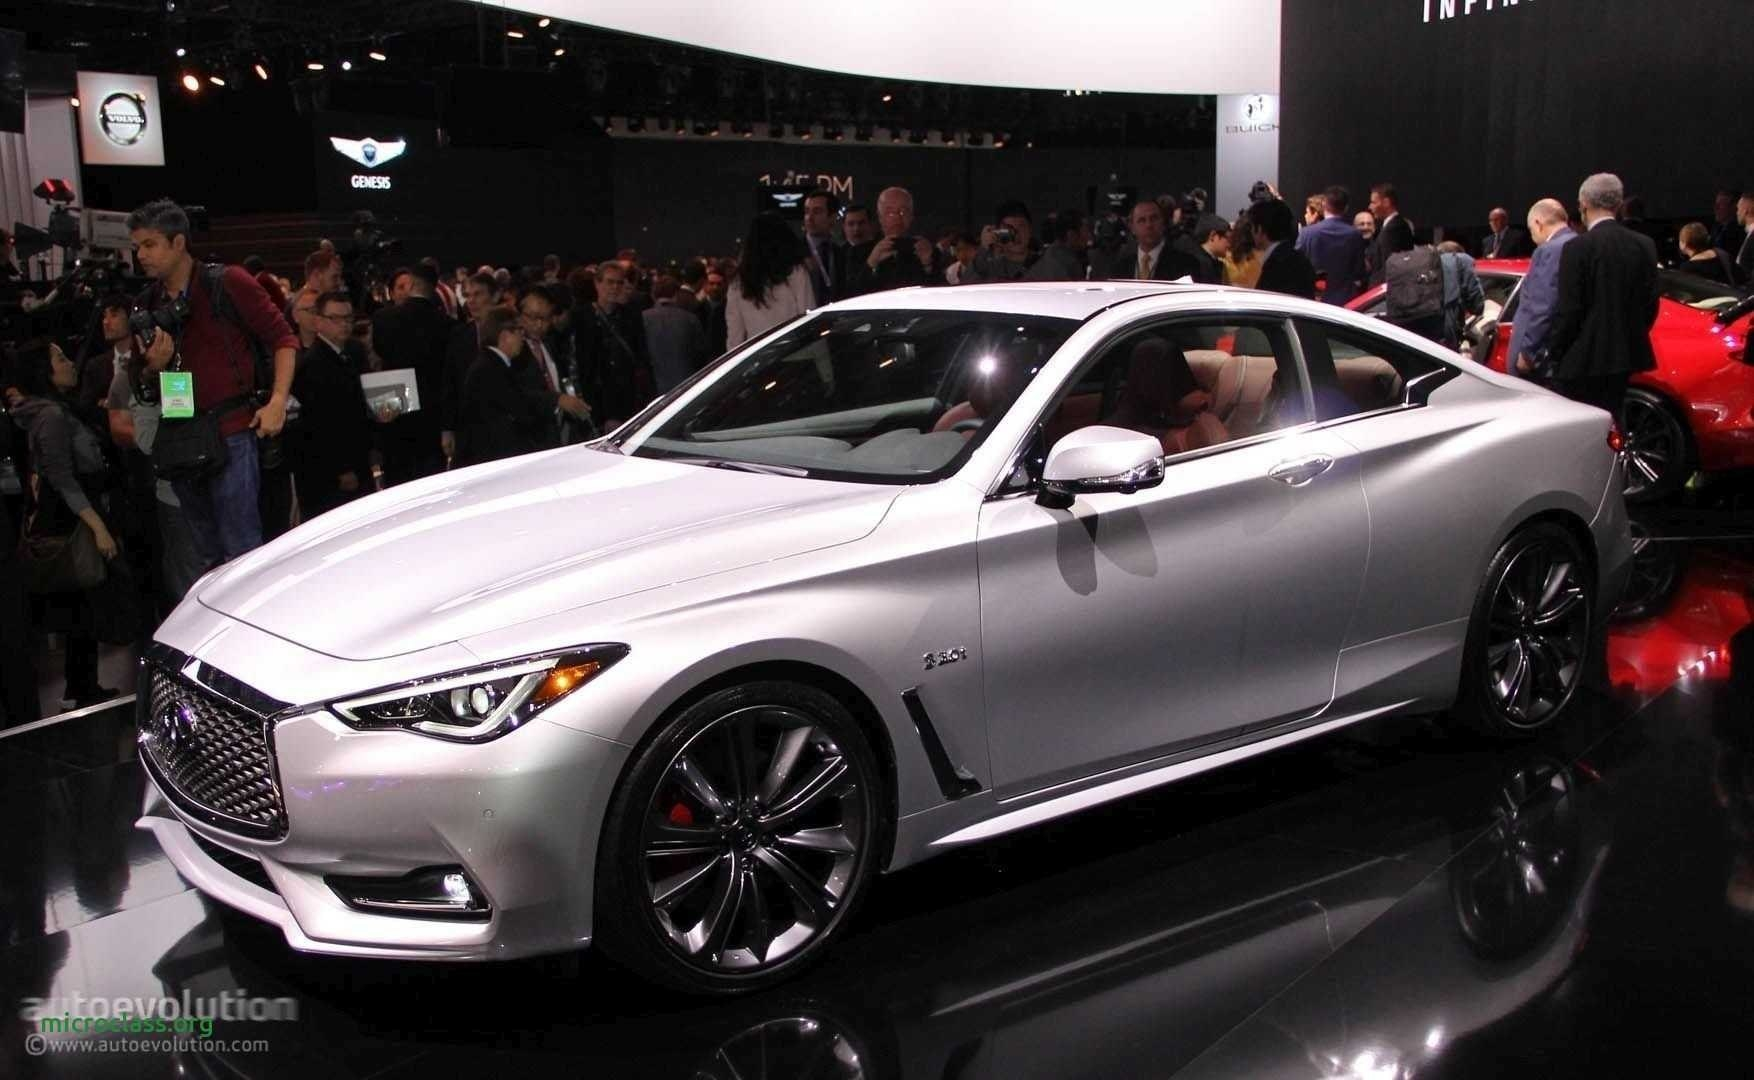 95 All New 2020 Infiniti Q60 Coupe Ipl Price Design and Review